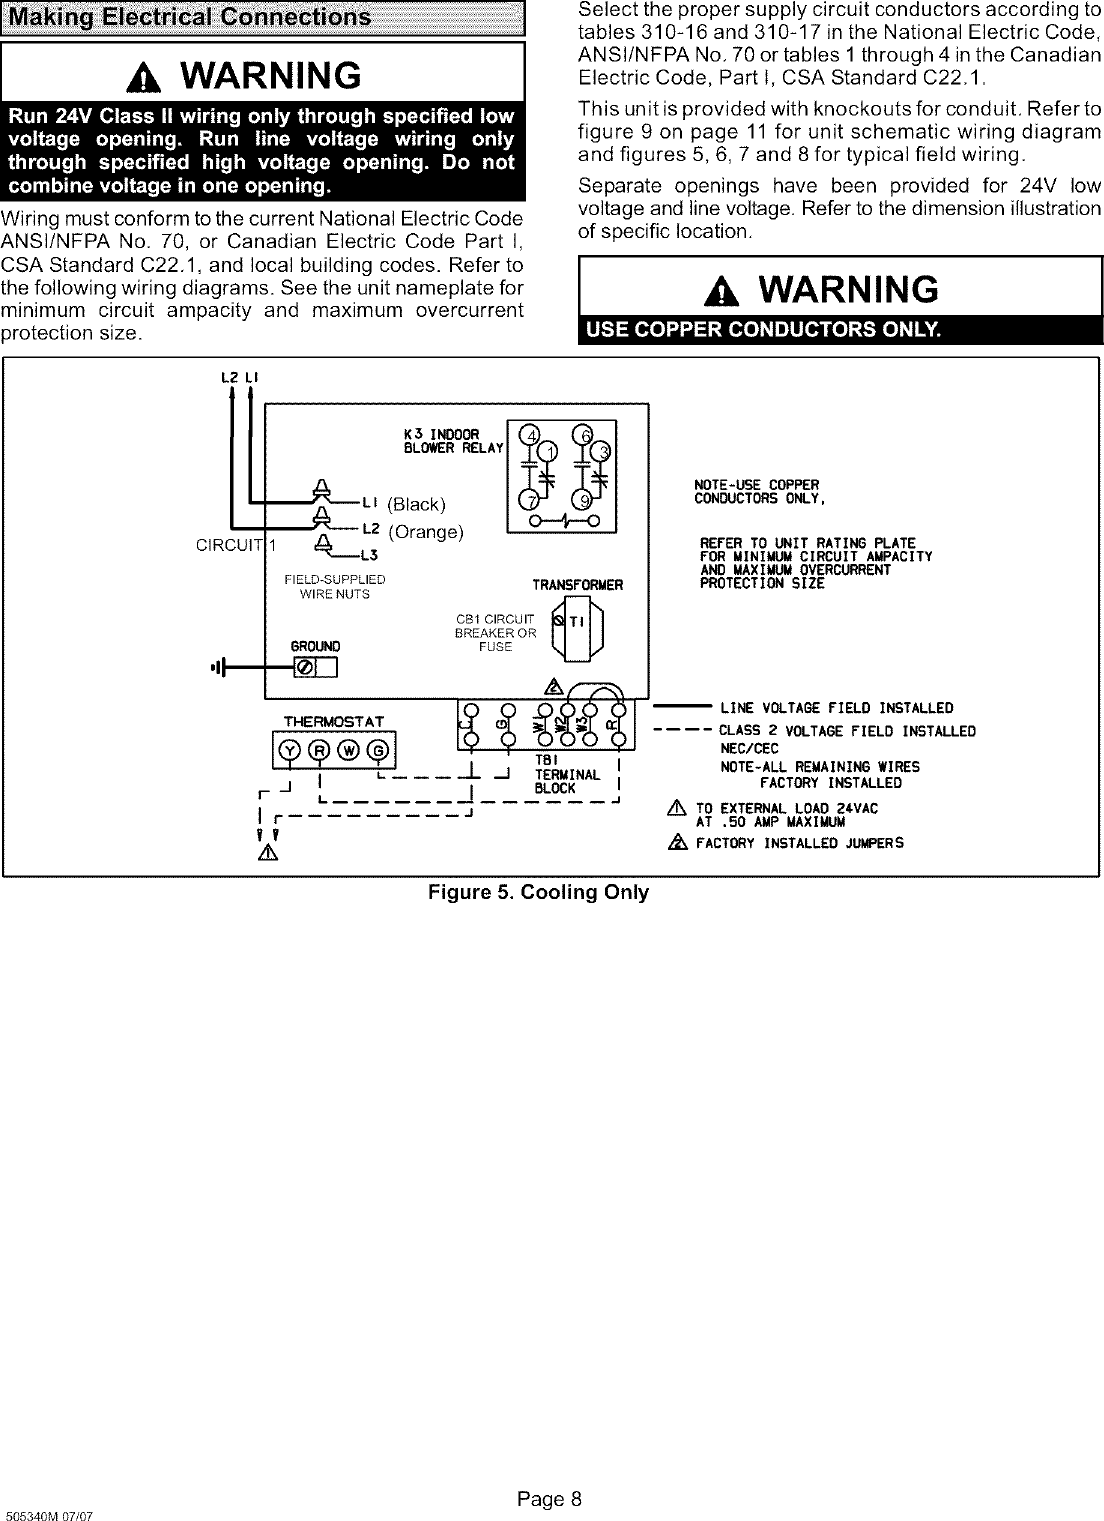 hight resolution of wiring diagram for lennox 89n18 schema diagram database wiring diagram for lennox 89n18